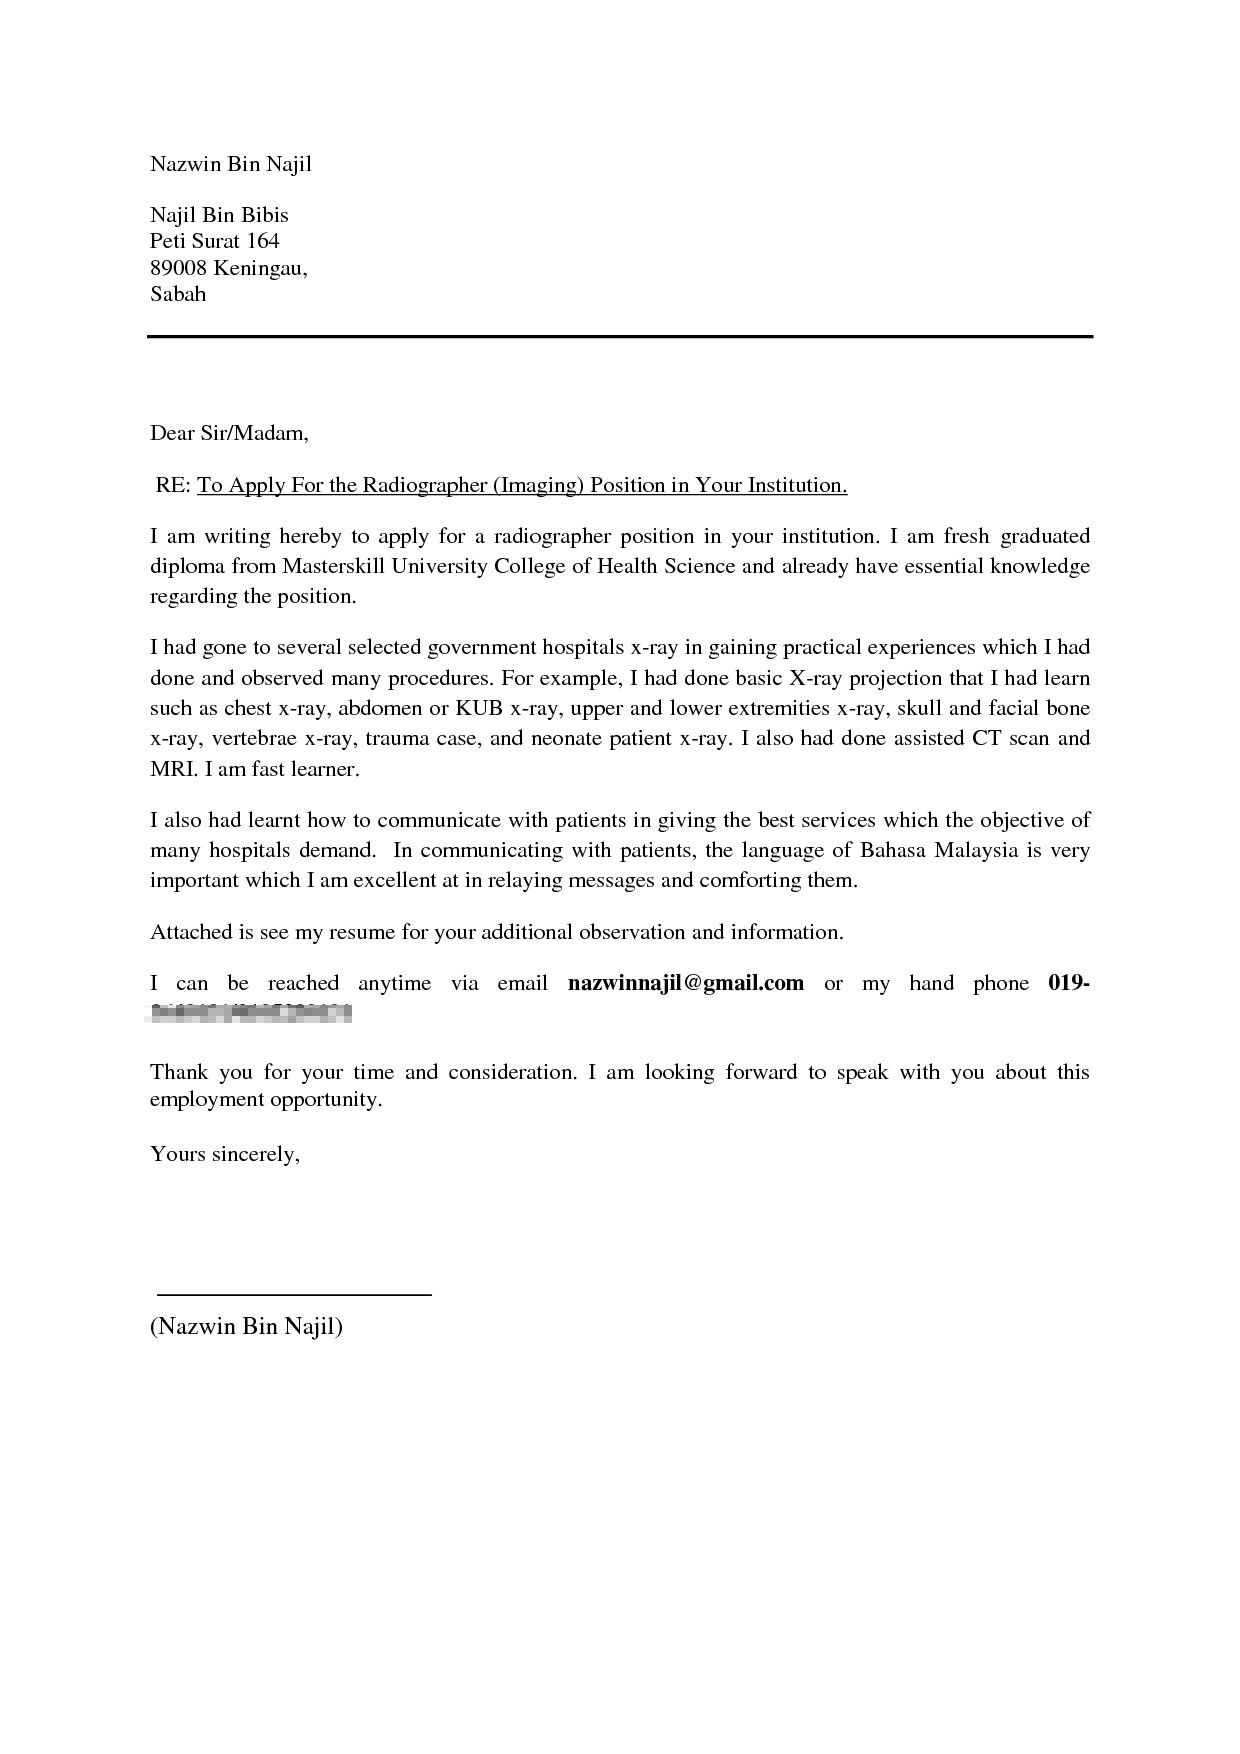 Motivation Letter Vs Cover Letter All You Need To Know About Motivation Letter Vs Co Cover Letter For Resume Resume Cover Letter Examples Cover Letter Example